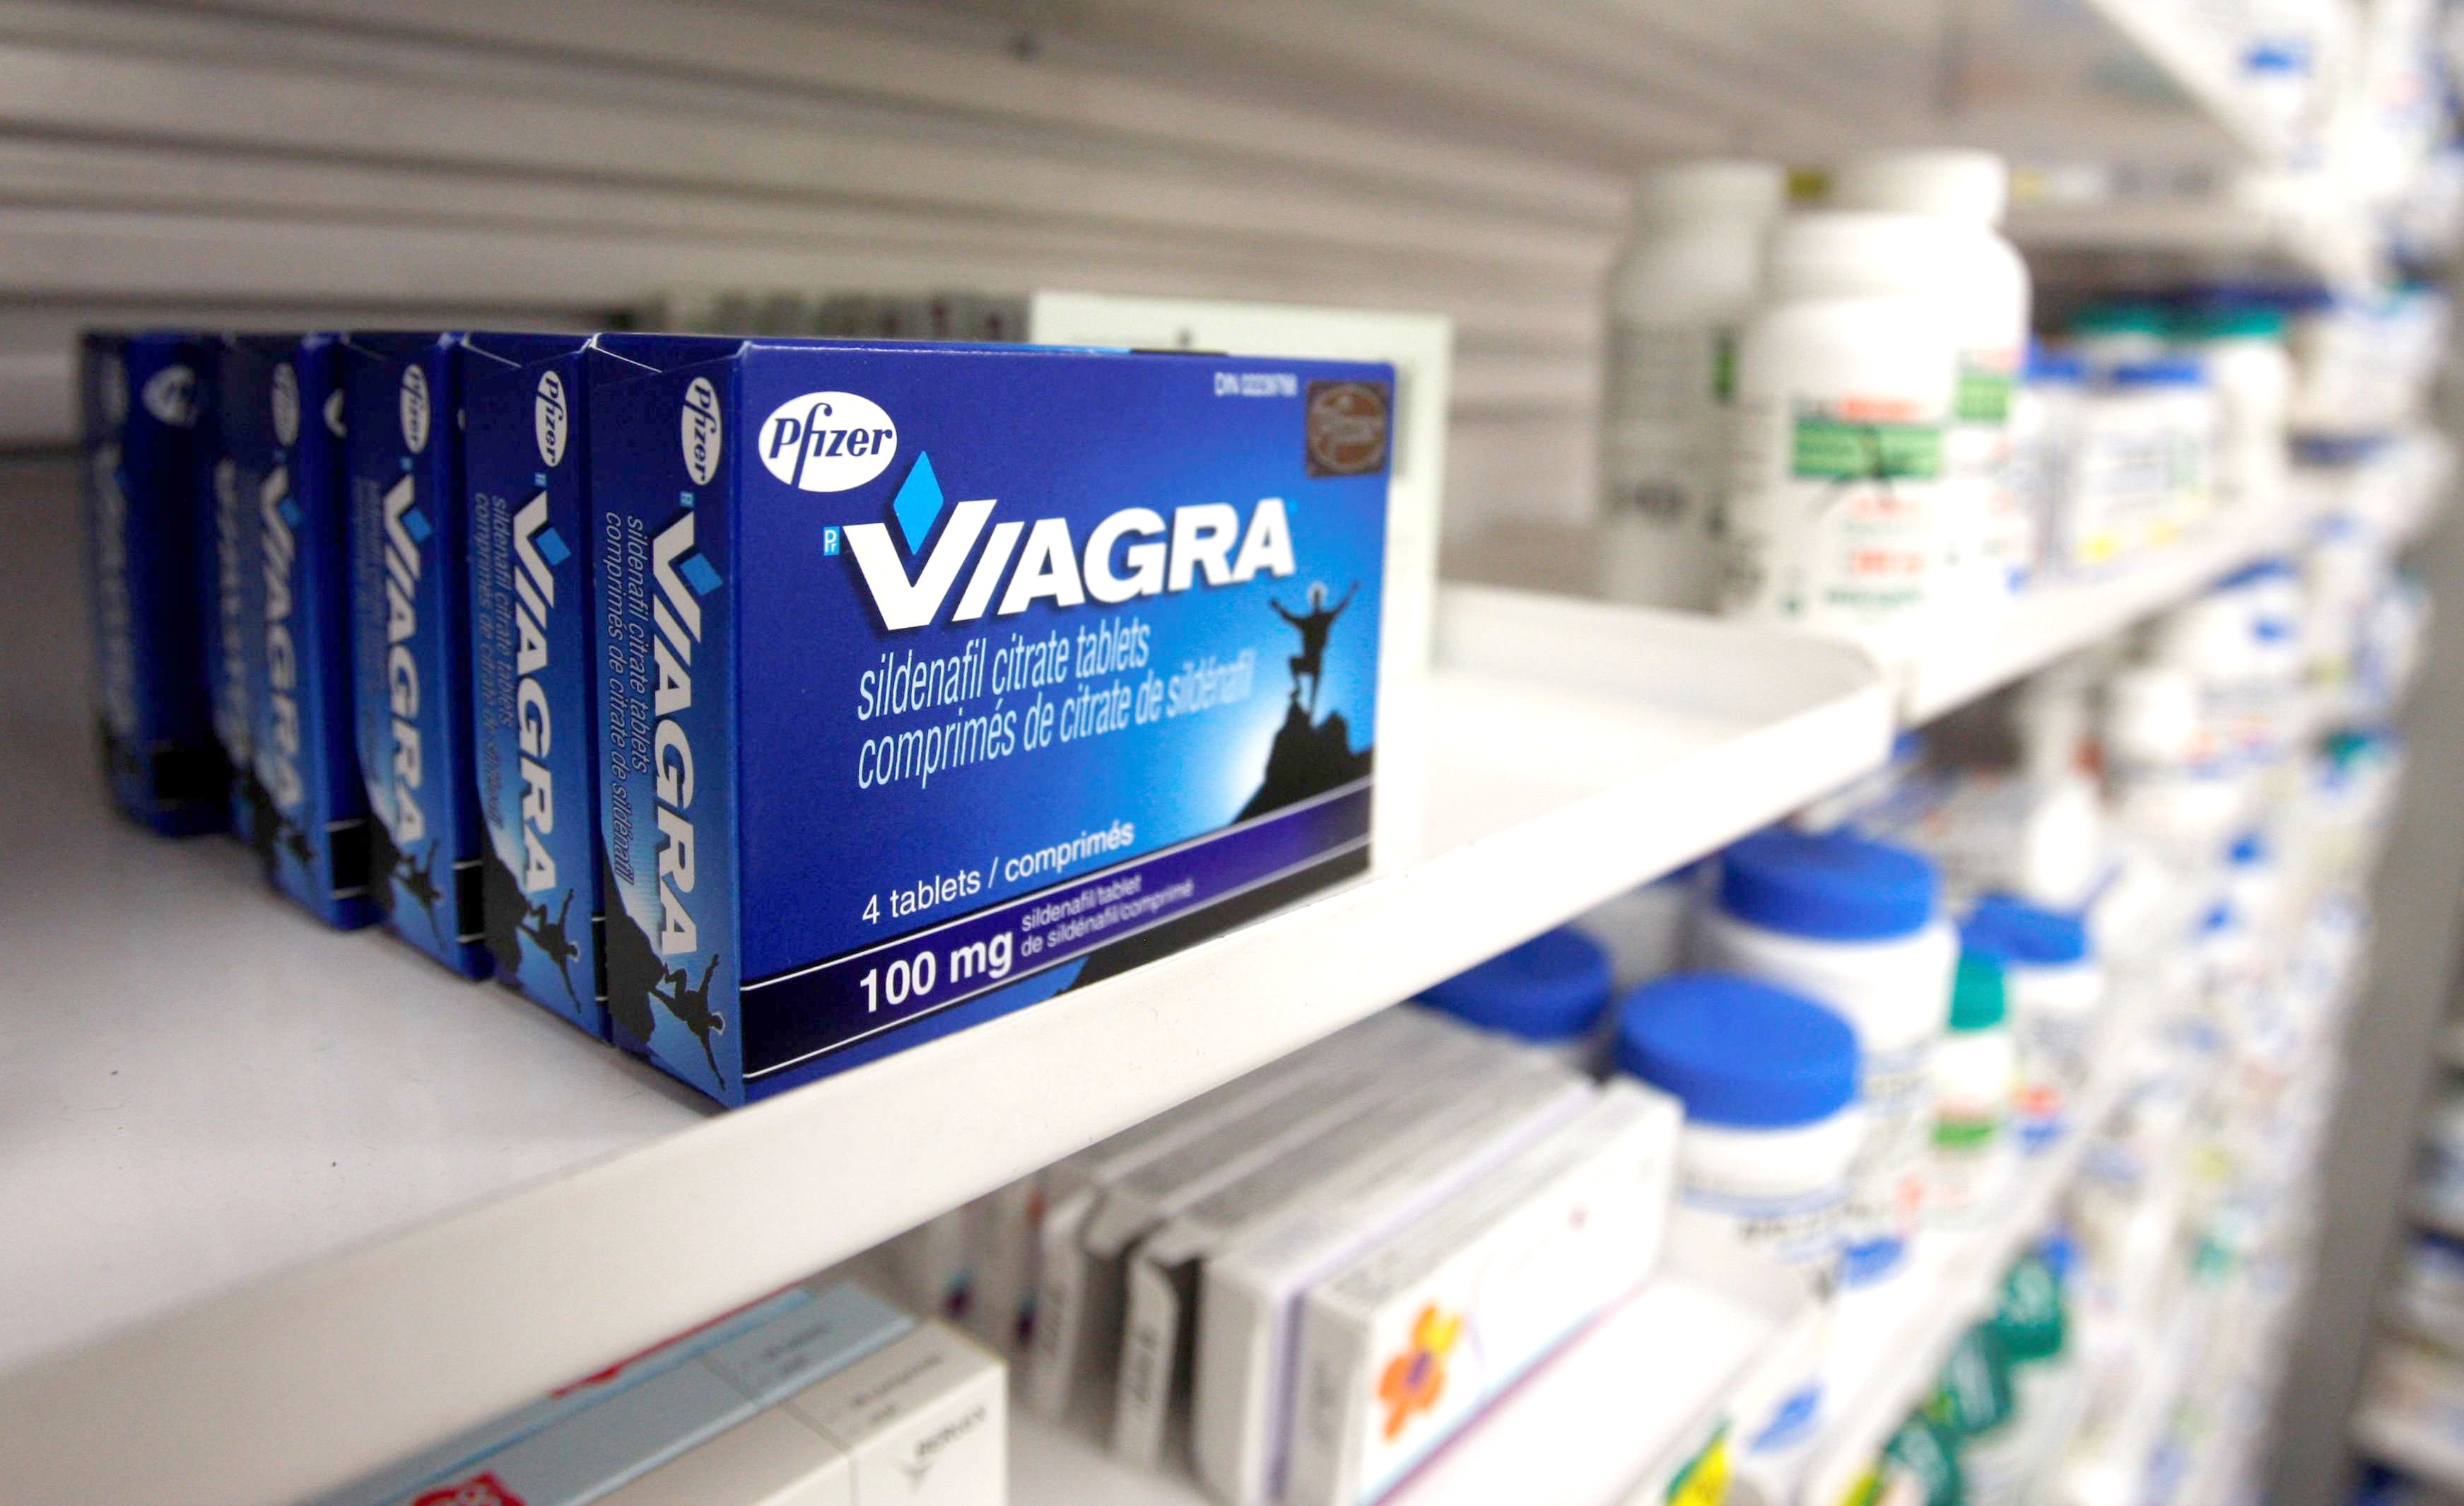 A box of Viagra, typically used to treat erectile dysfunction, on display at a pharmacy. (Reuters)